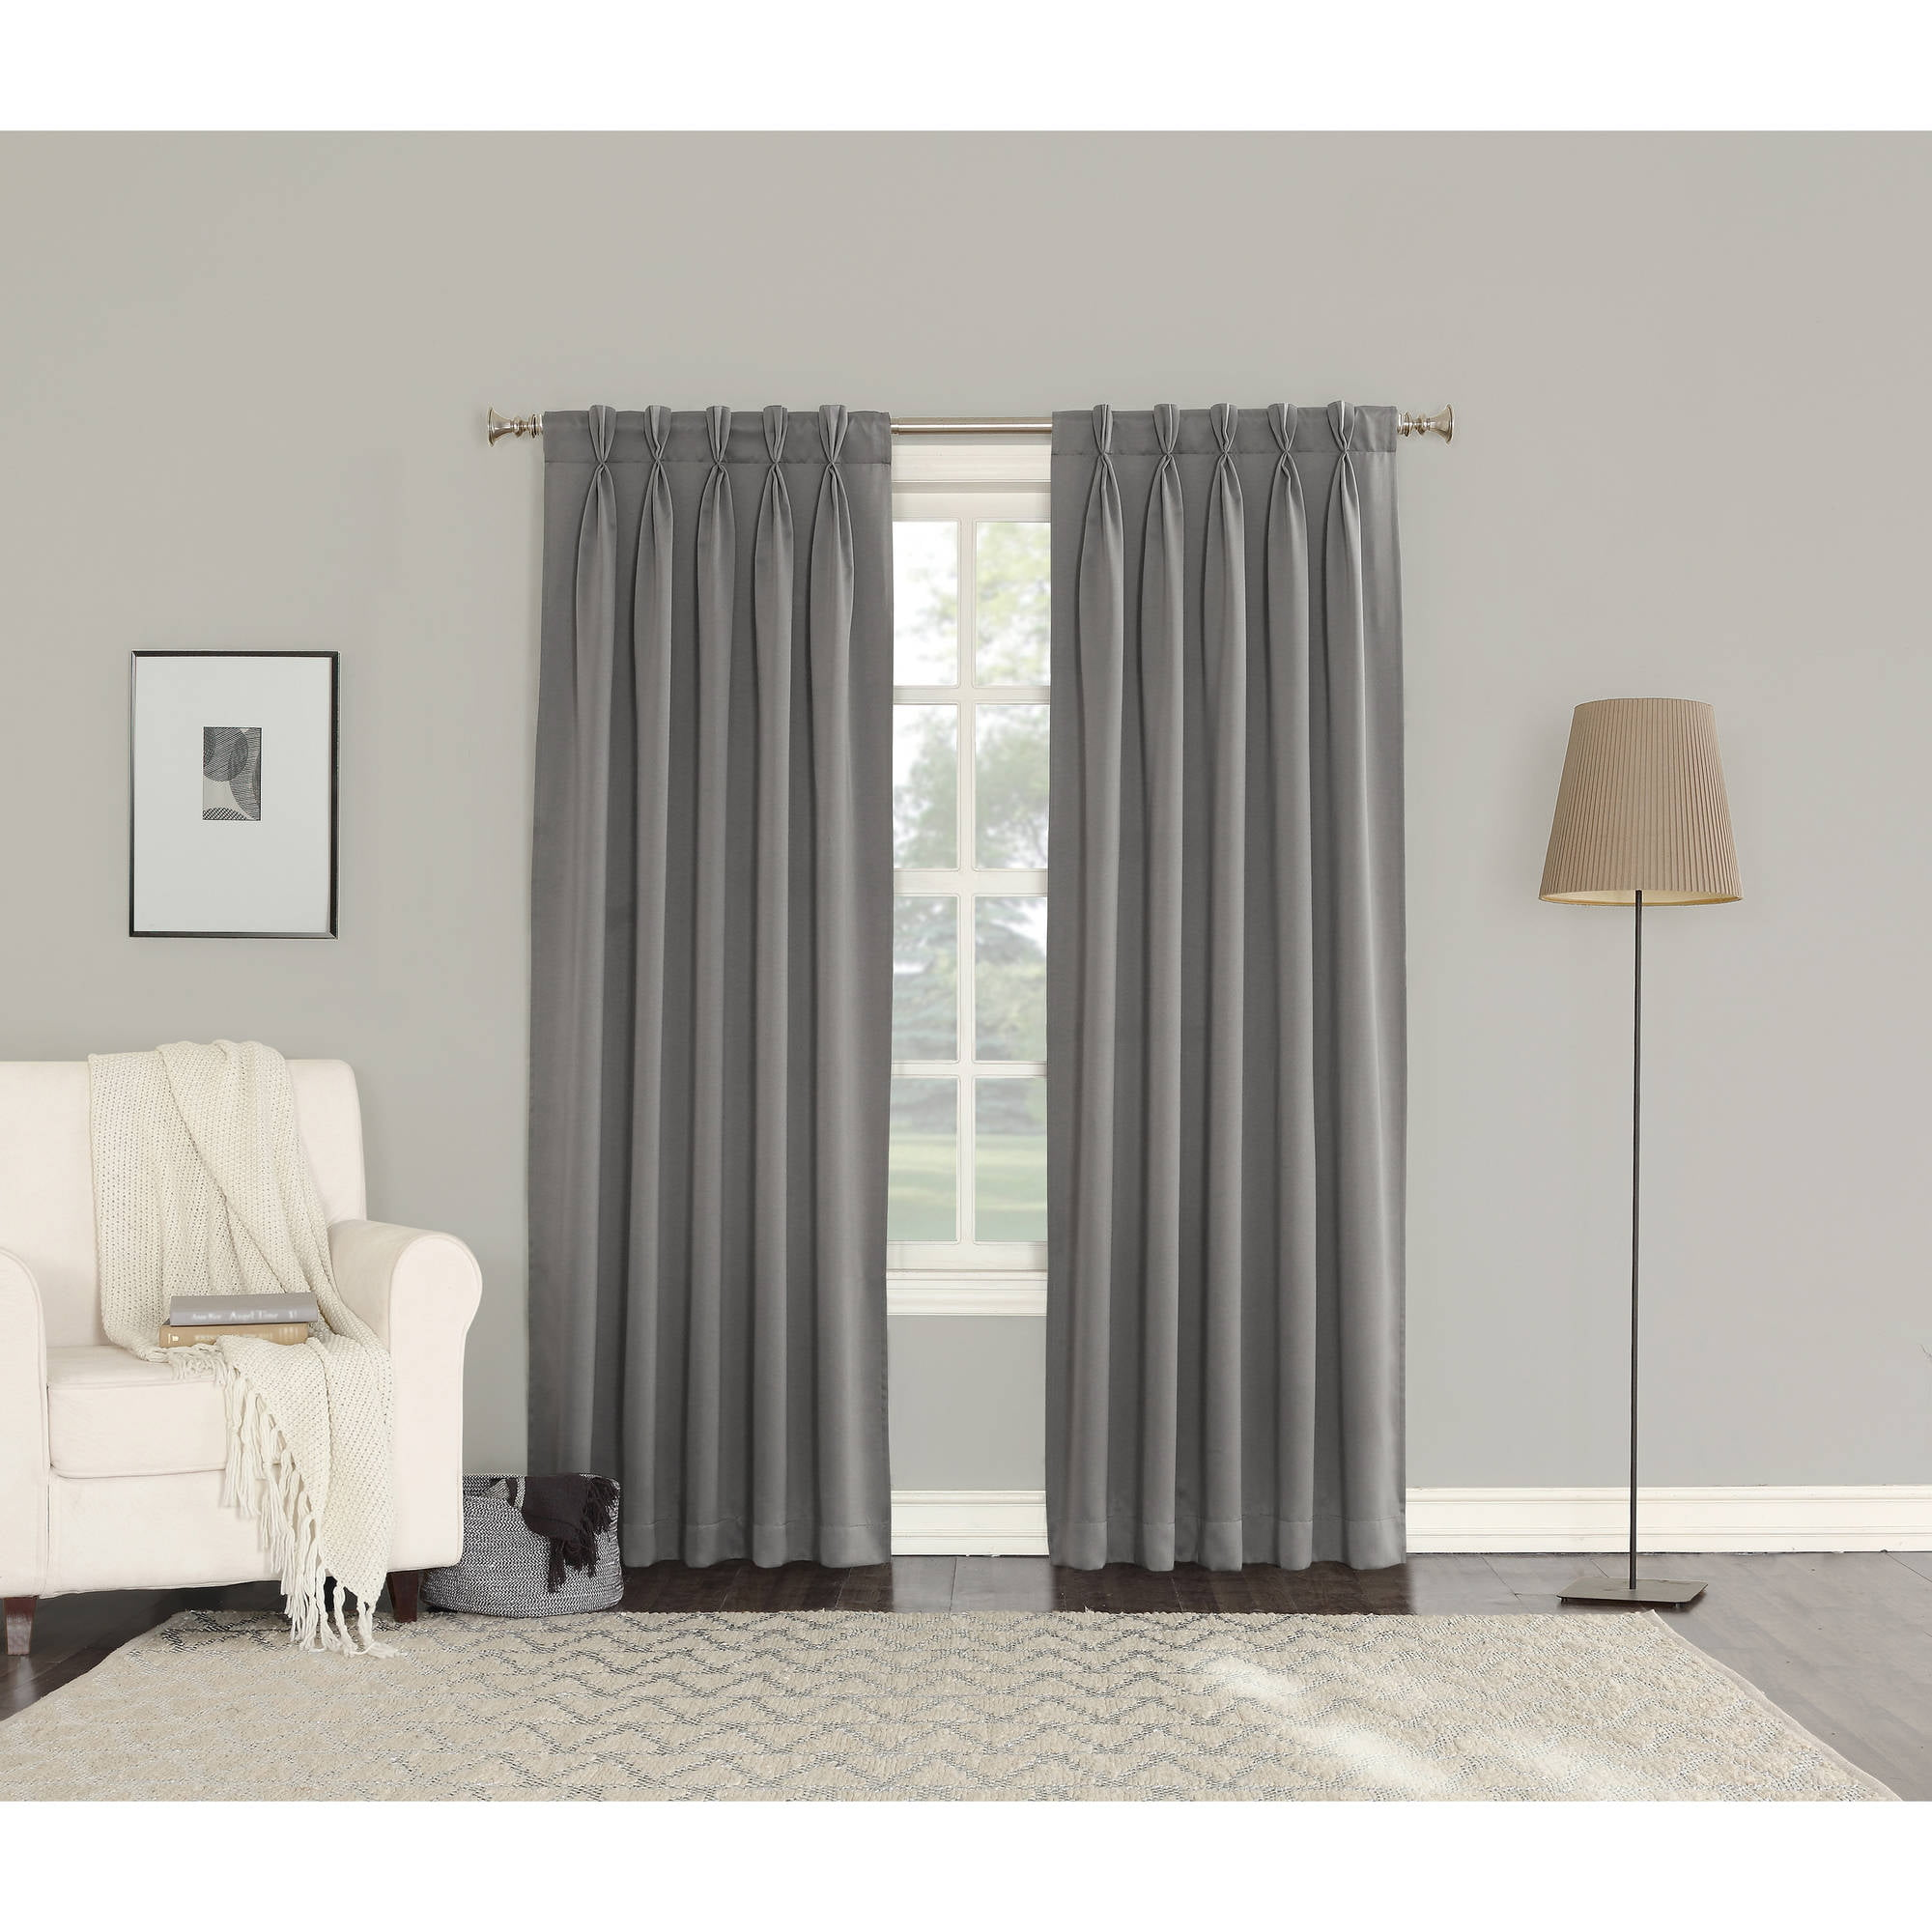 sun zero bartlett pinch pleat back tab room darkening panel pair set of 2 walmartcom